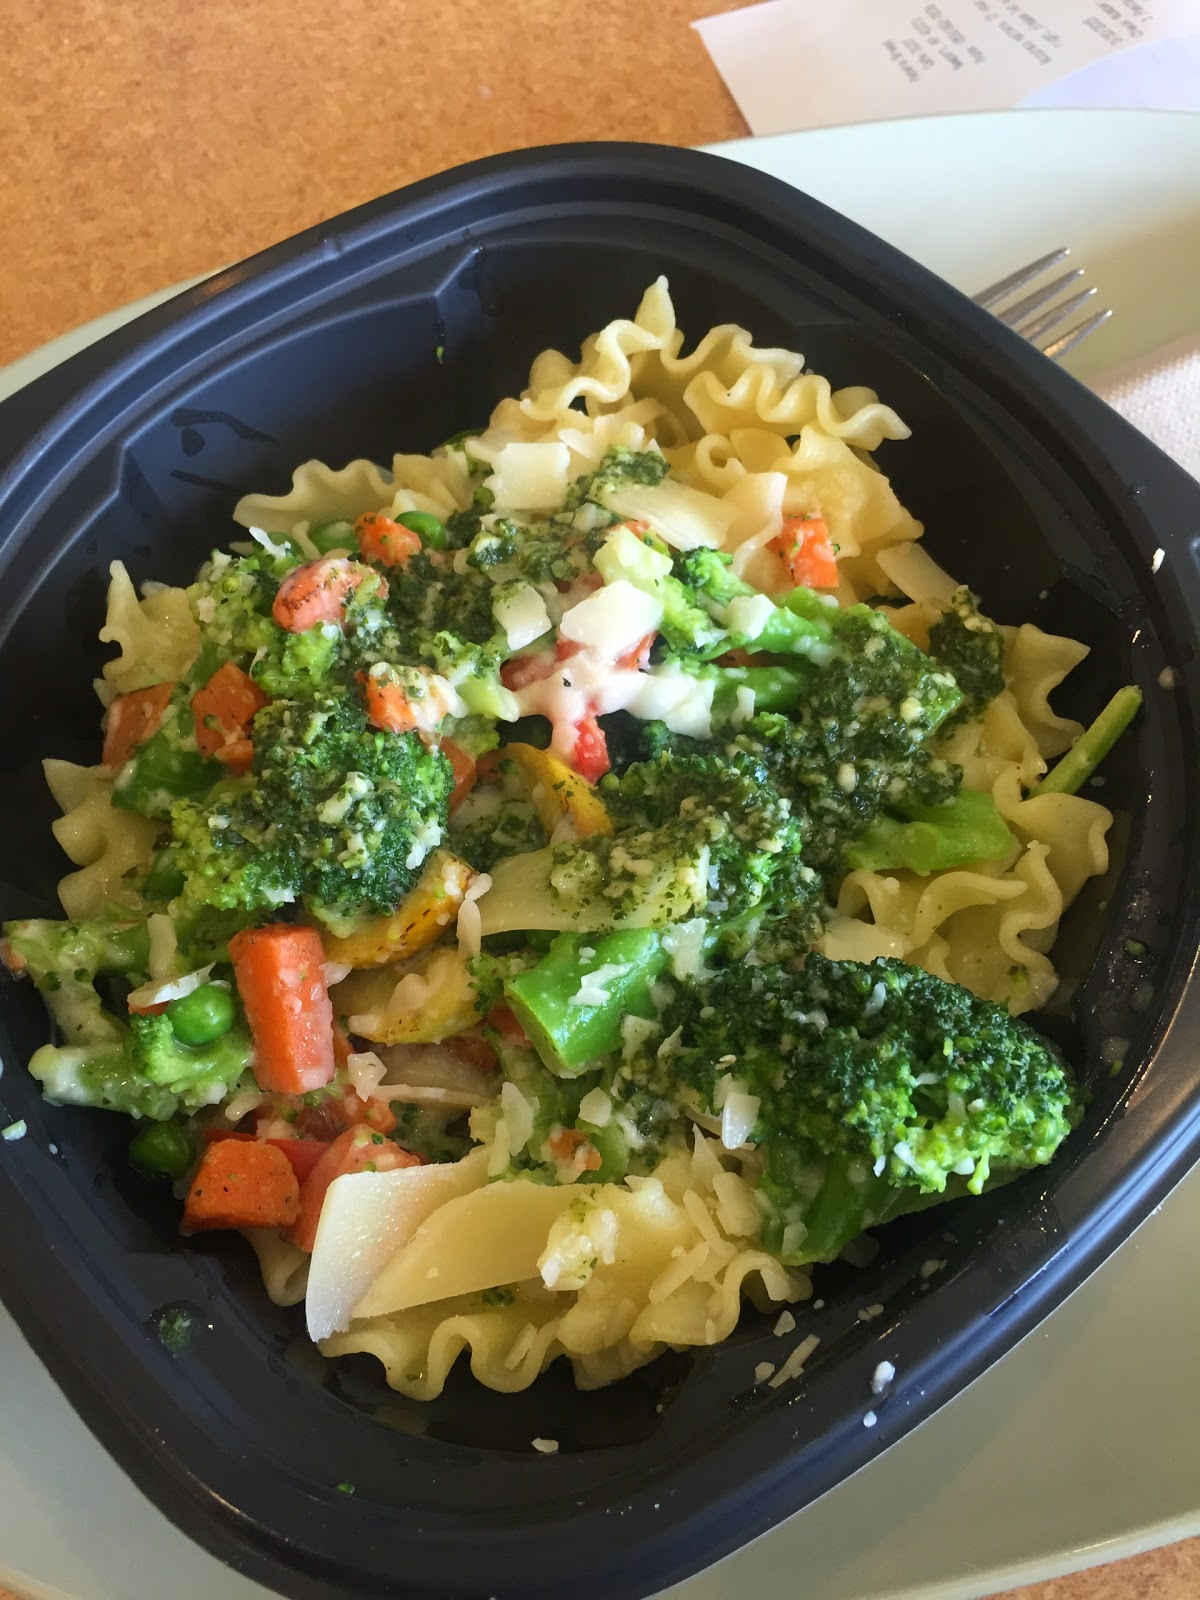 Restaurant Review: New Pasta Primavera at Panera Bread | The Food Hussy!